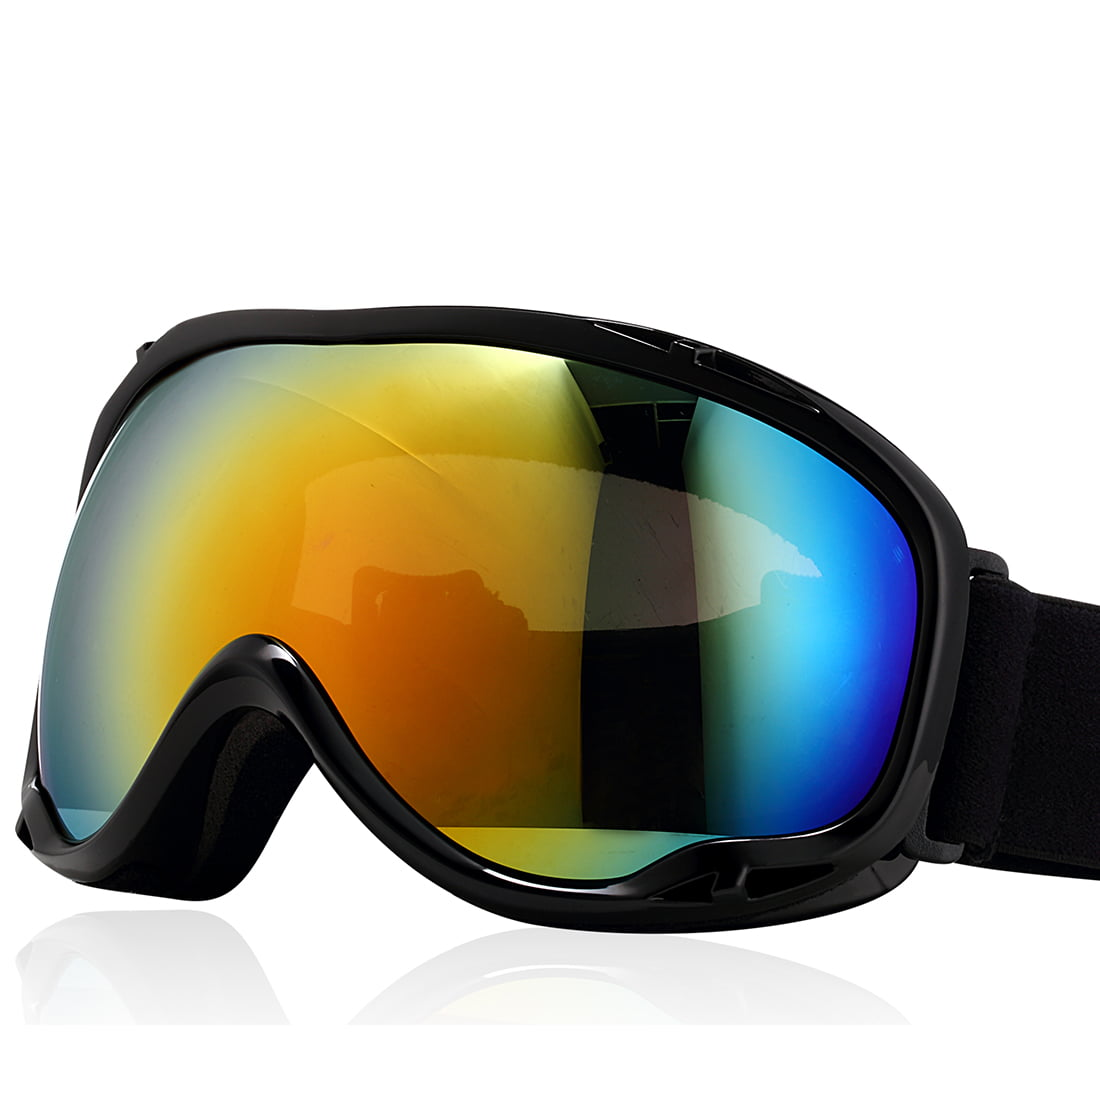 Ski Snowboards Goggles Anti-fog UV400 Protect Men Women Double Lens Adjustable Strap UXCELL by Unique-Bargains